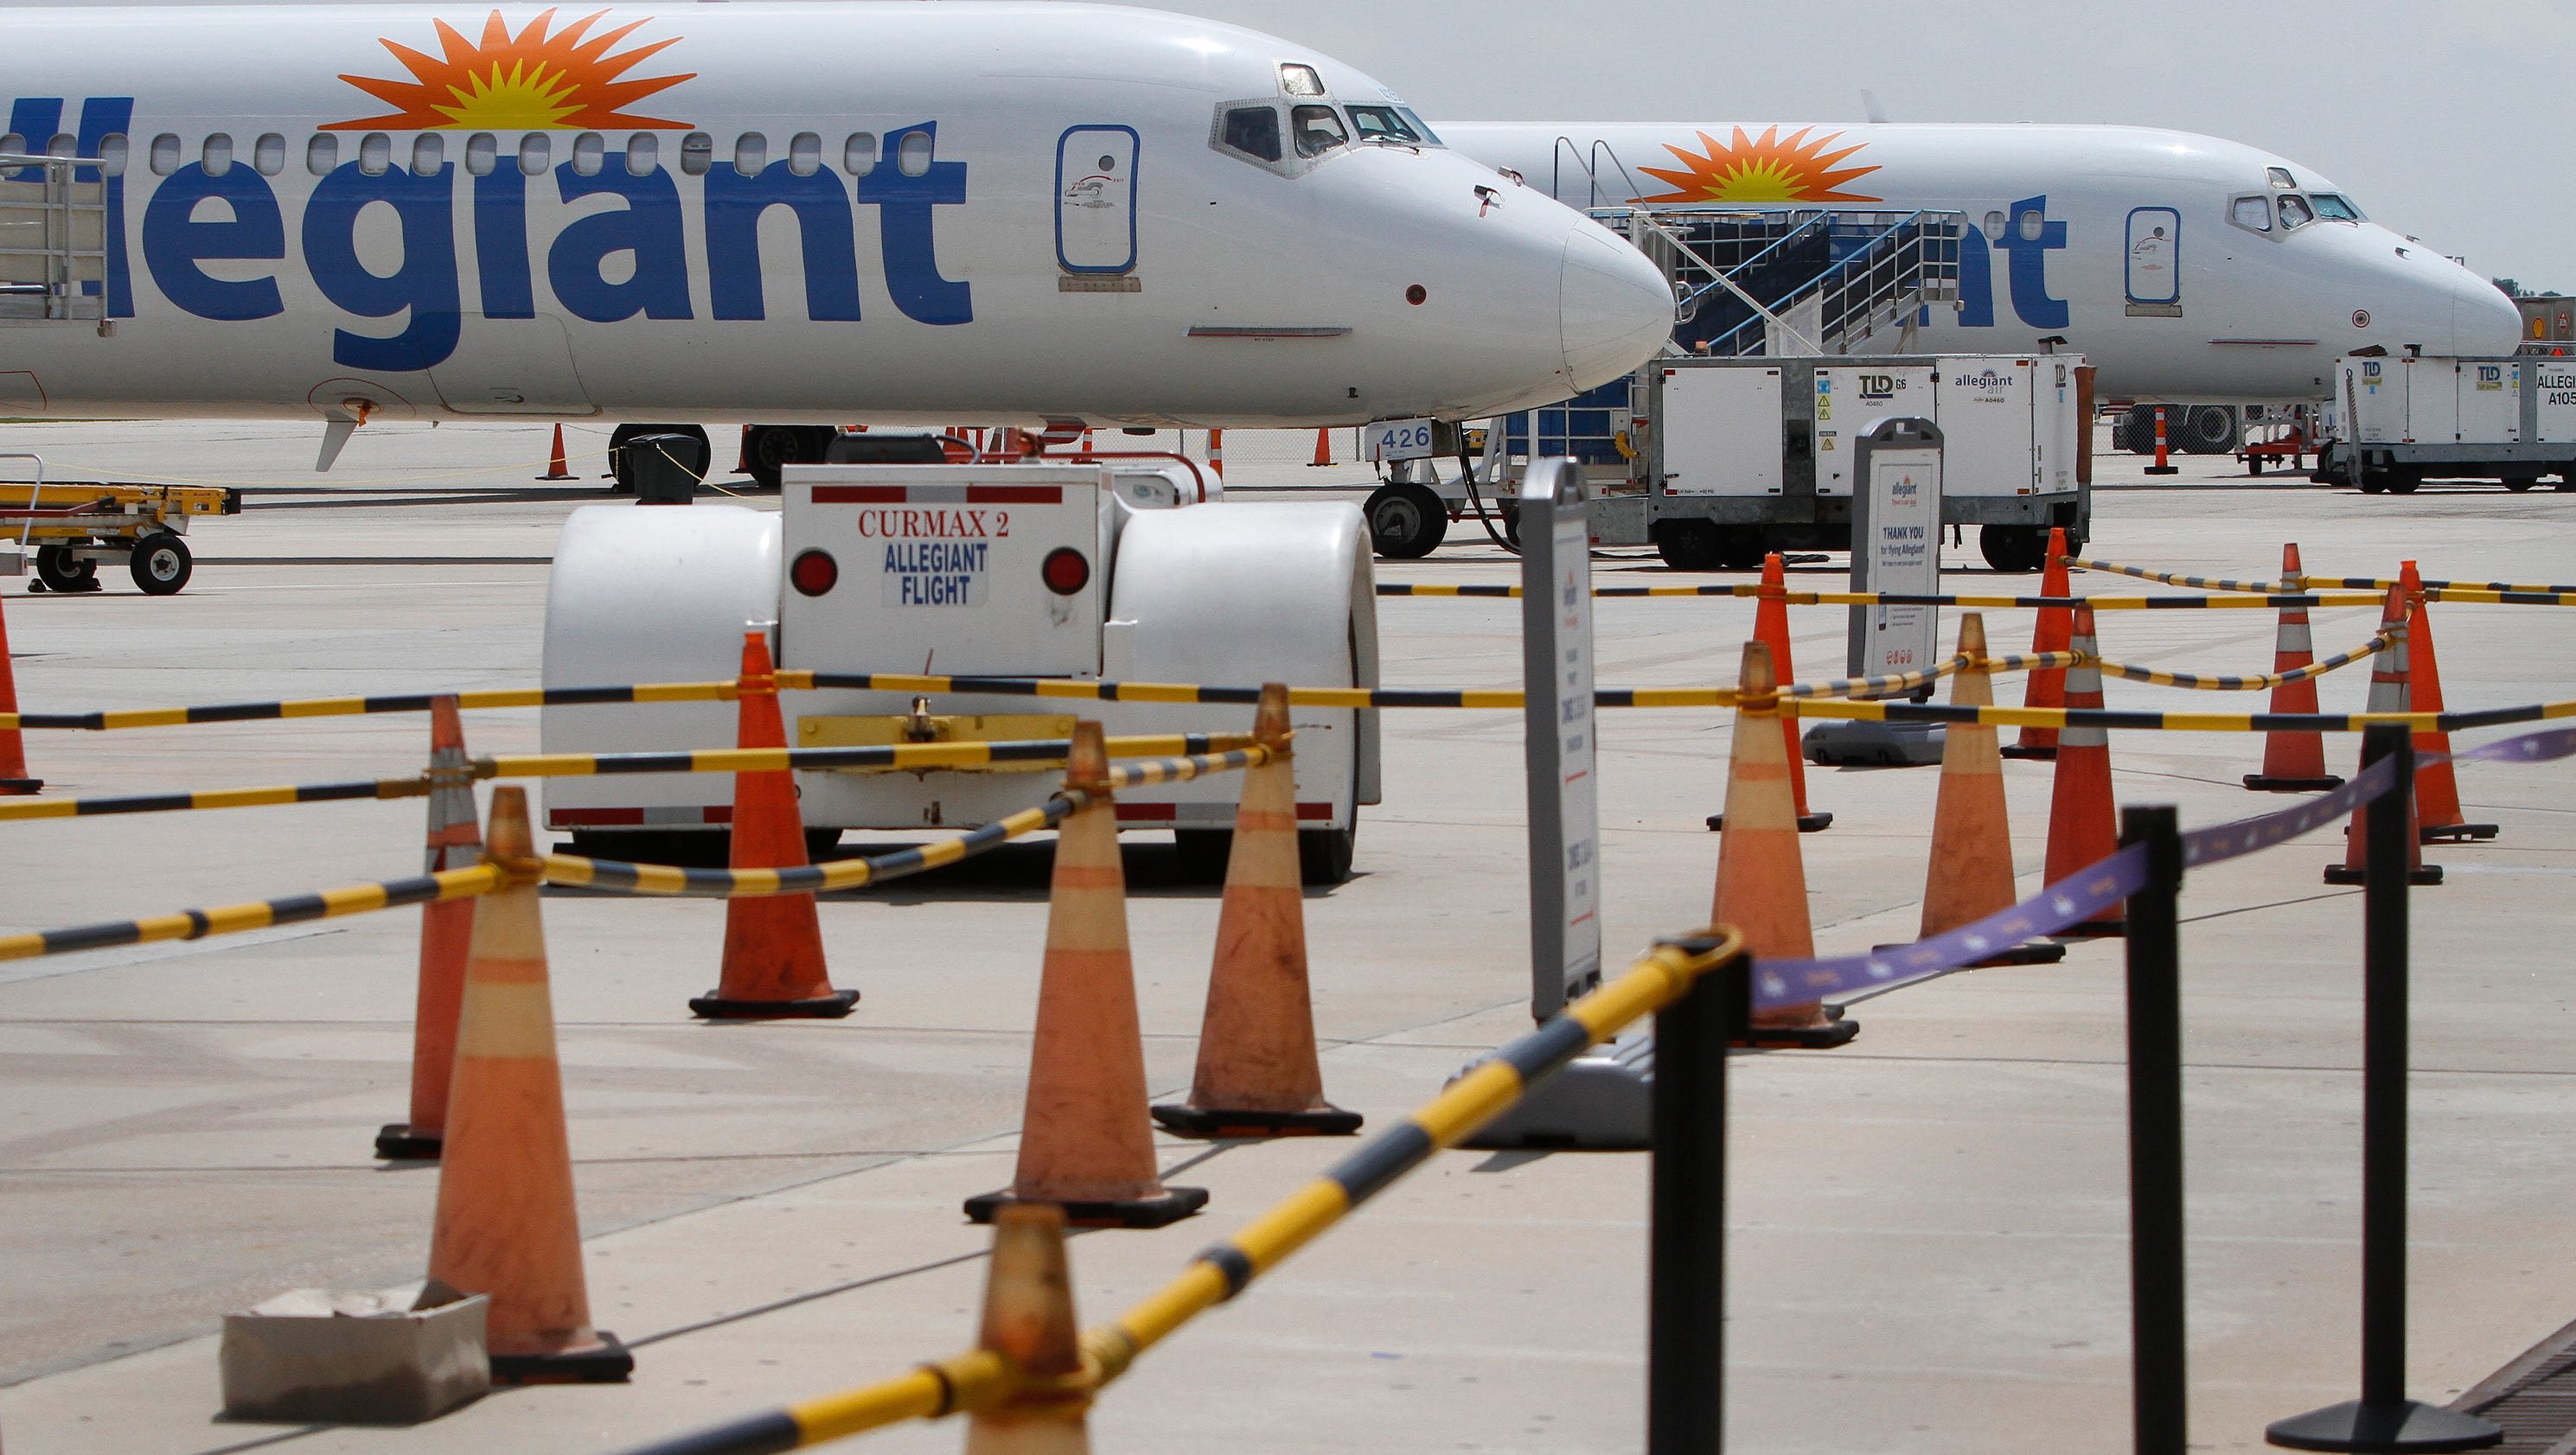 Punta gorda airport grows with allegiant flights for Global motors fort myers florida